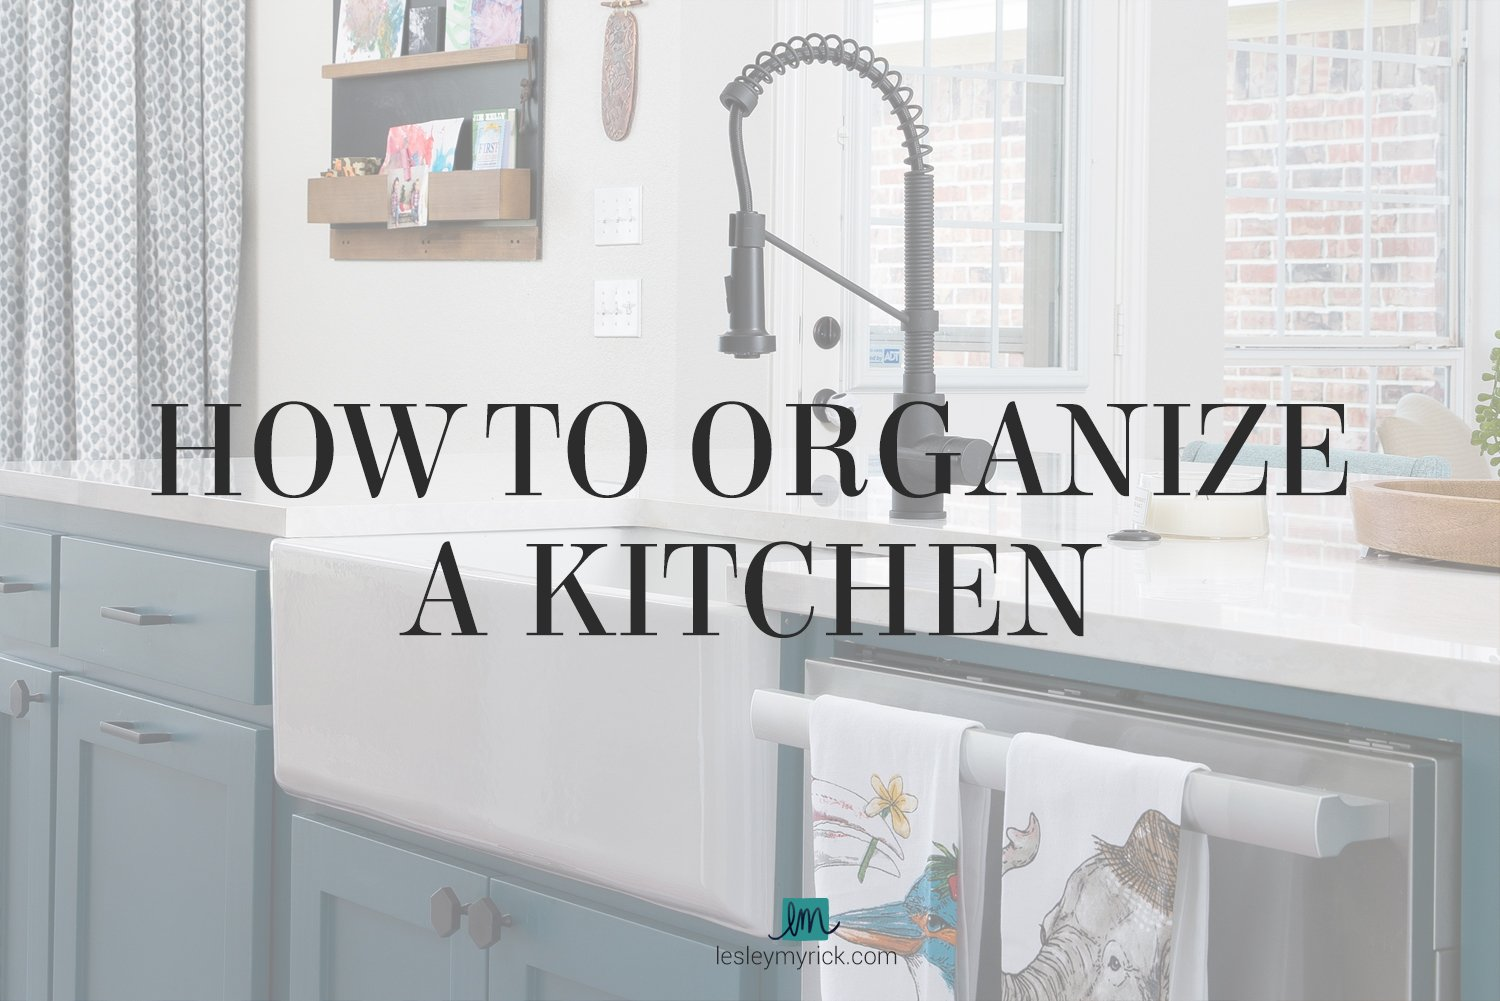 How to organize a kitchen! 5 tips from Atlanta interior designer Lesley Myrick